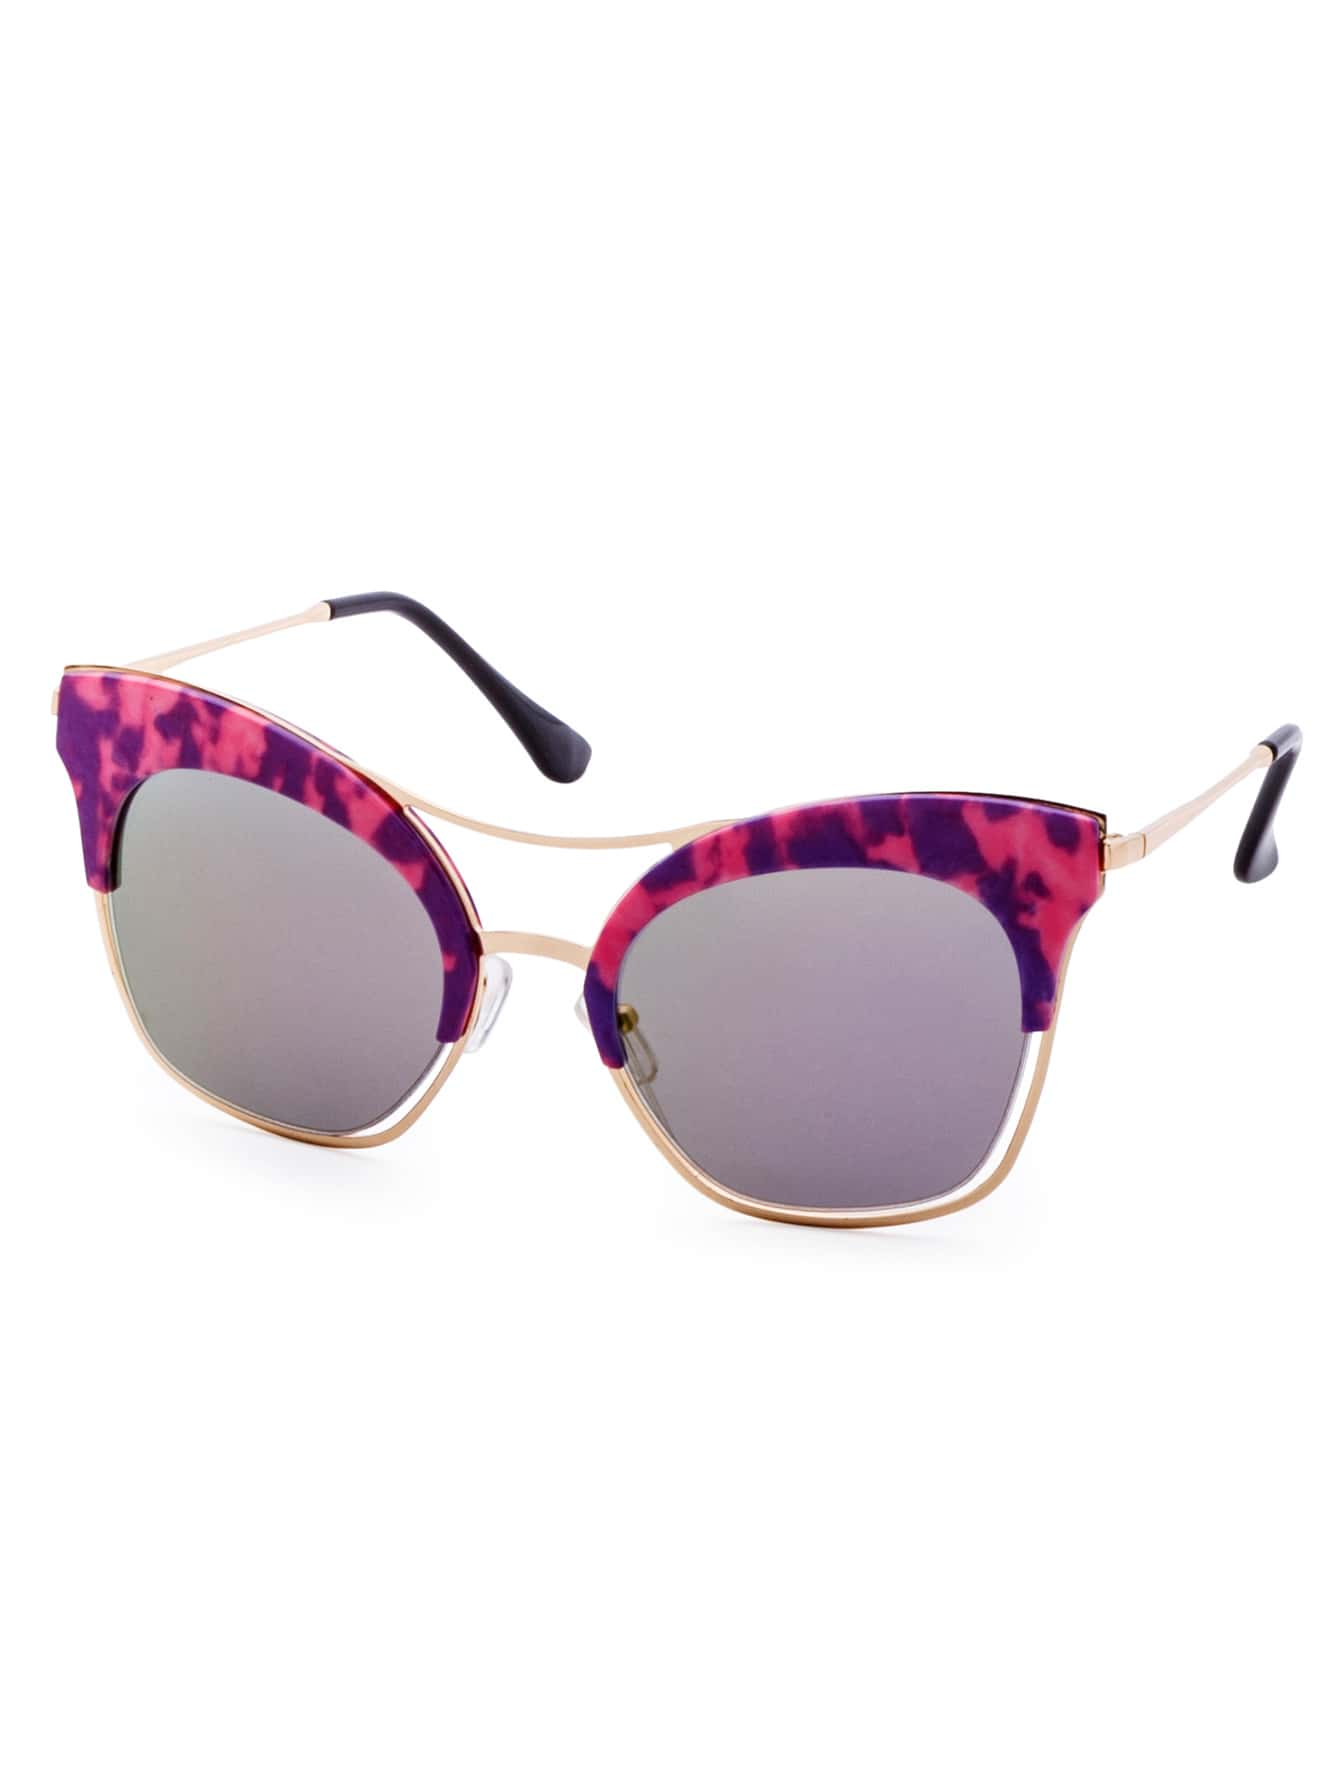 Gold Frame Cat Eye Sunglasses : Purple And Gold Frame Double Bridge Cat Eye Sunglasses ...